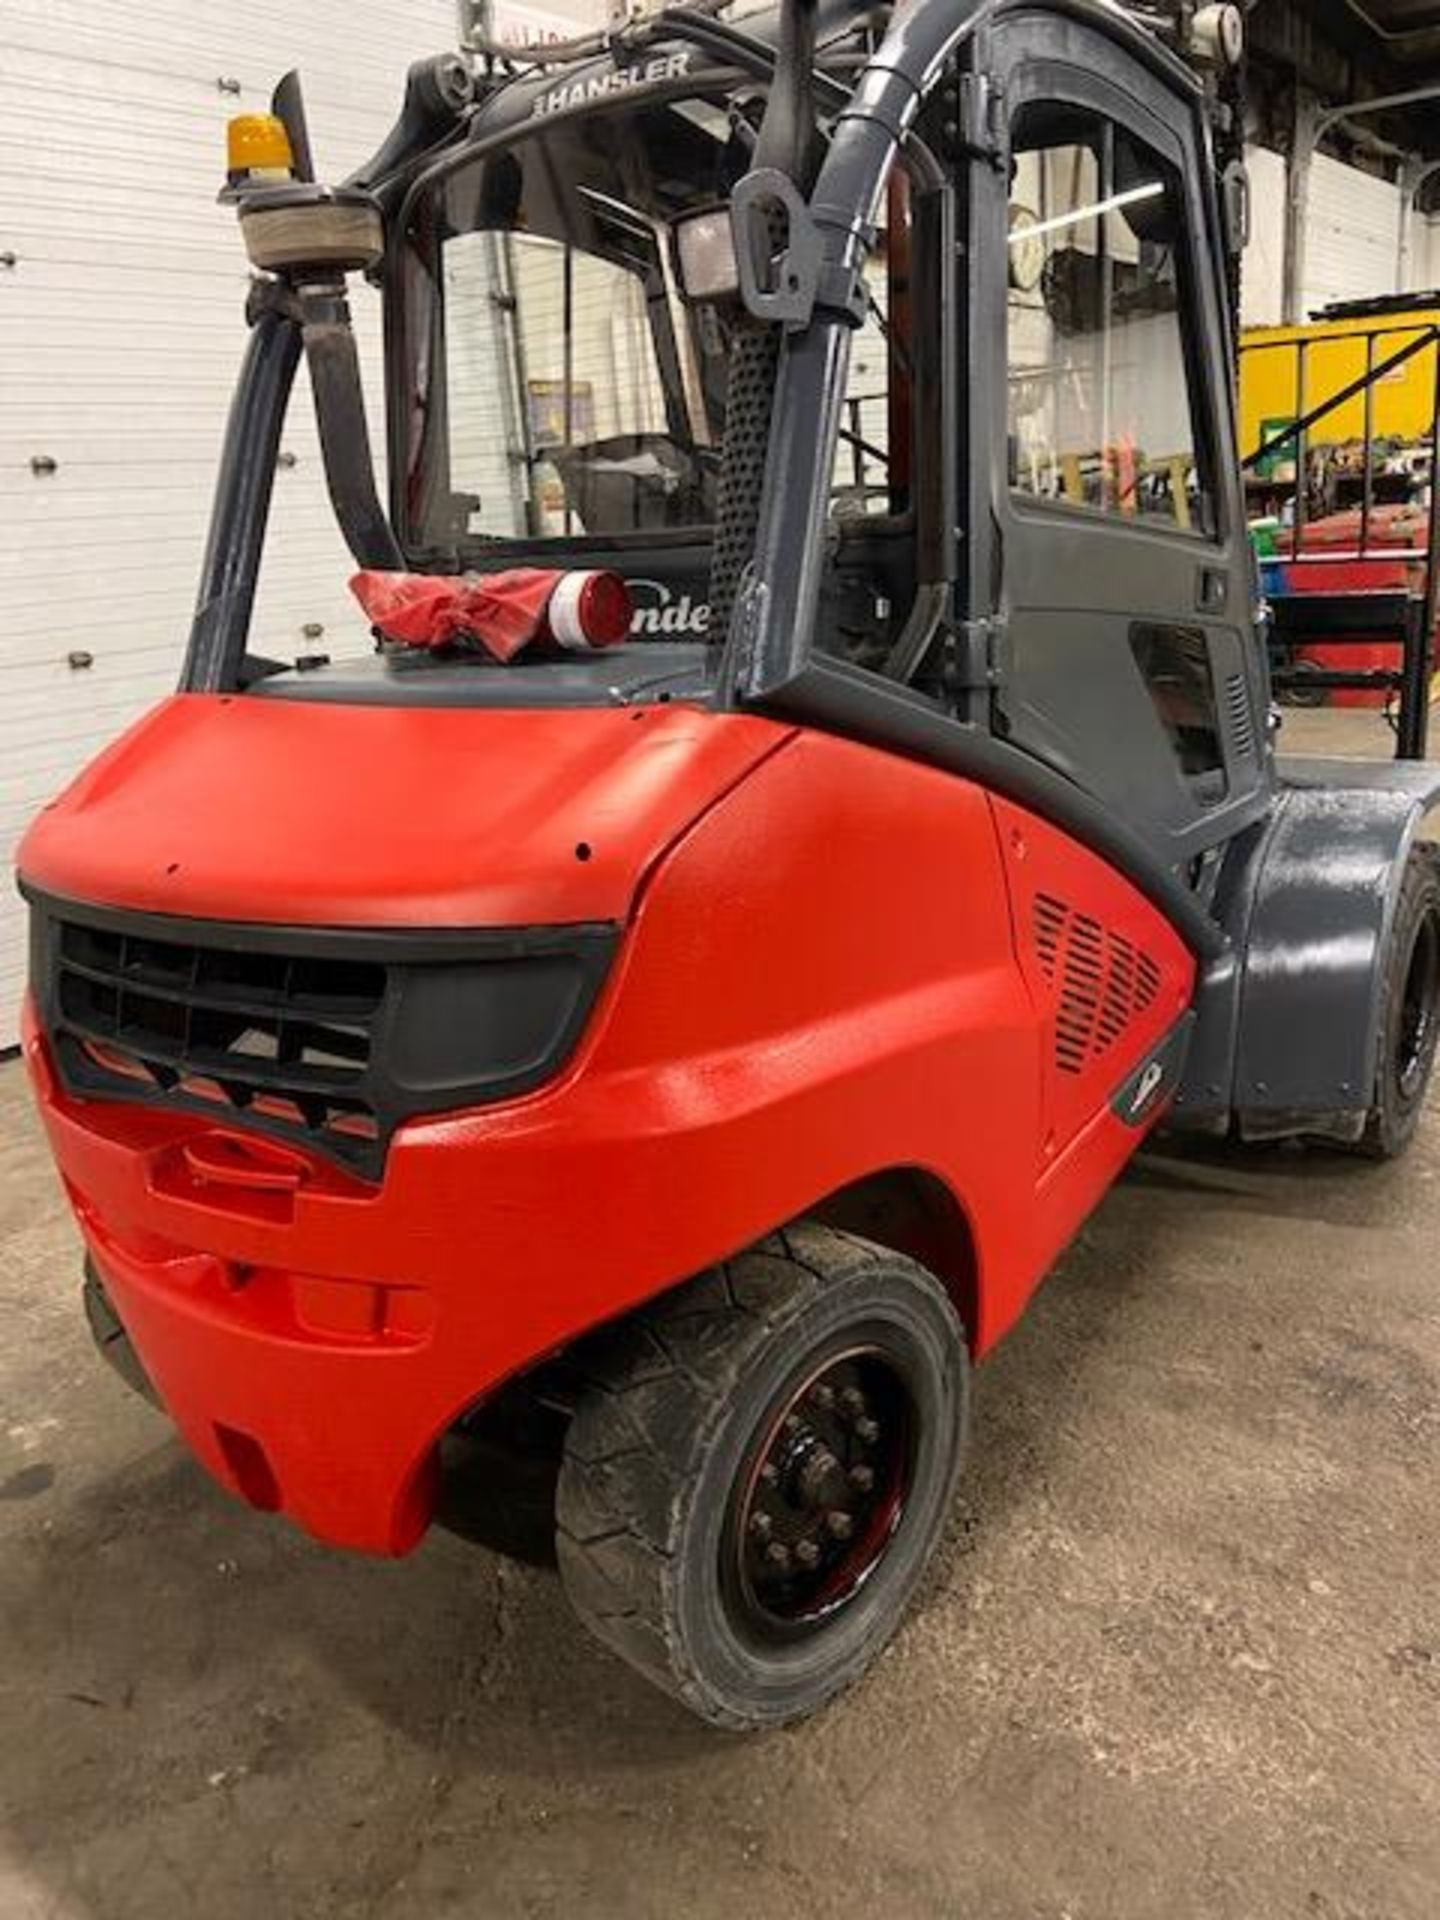 FREE CUSTOMS - 2012 Linde 10,000lbs OUTDOOR Forklift with NICE CAB & sideshift & fork positioner - Image 3 of 3